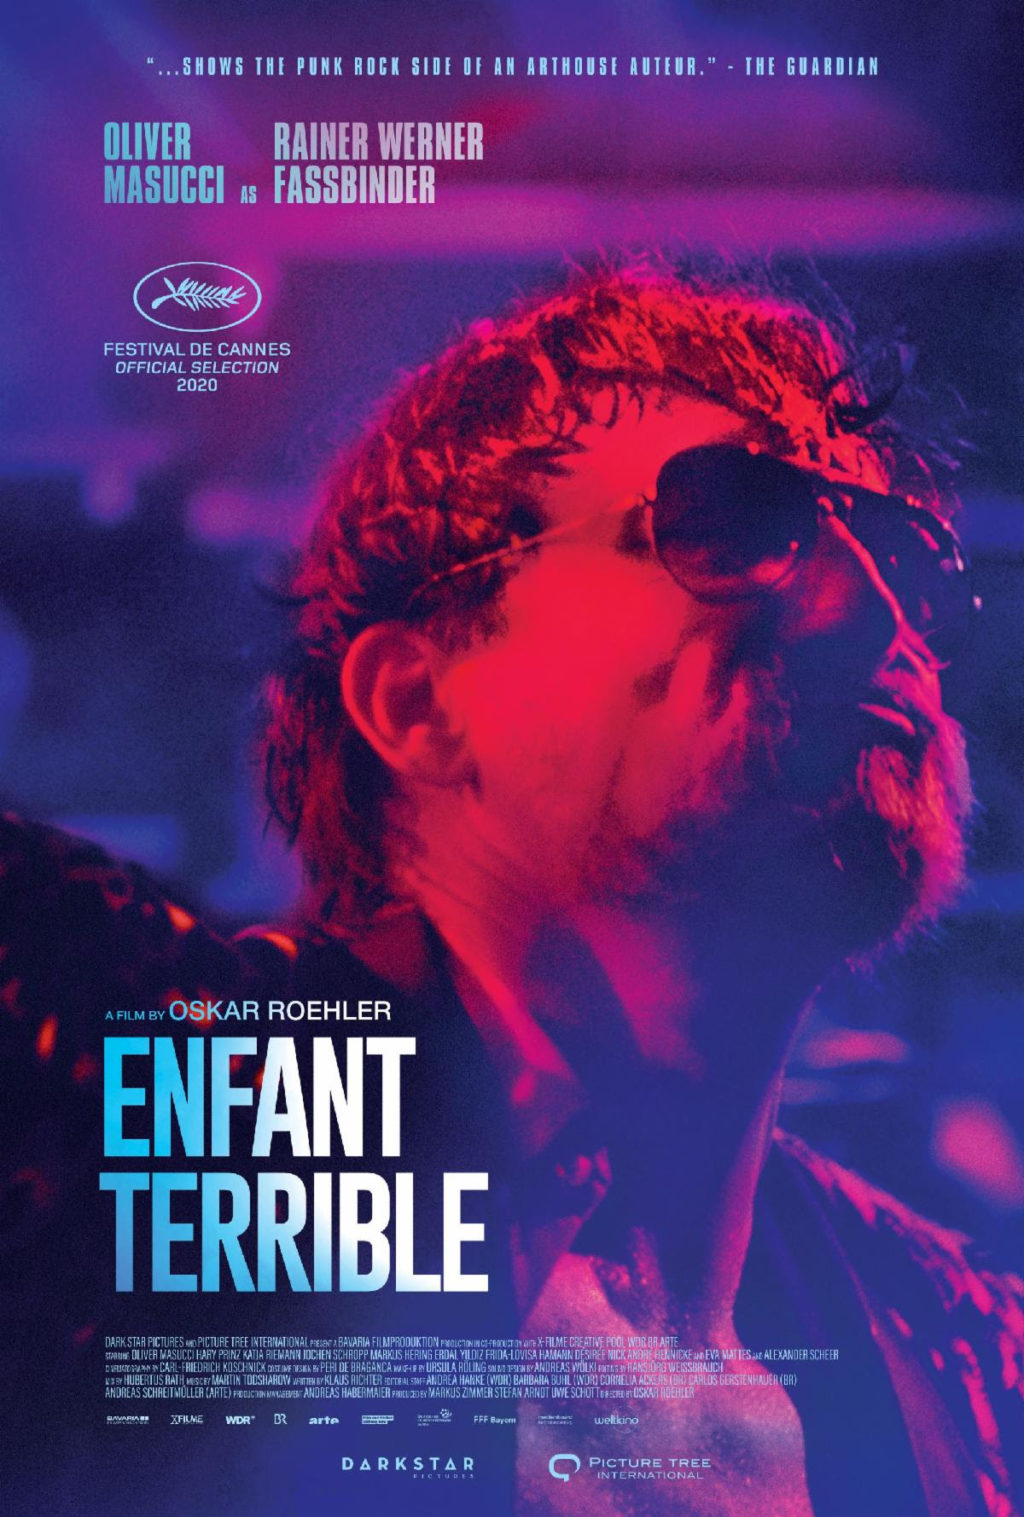 Enfant Terrible: Where and When to Watch